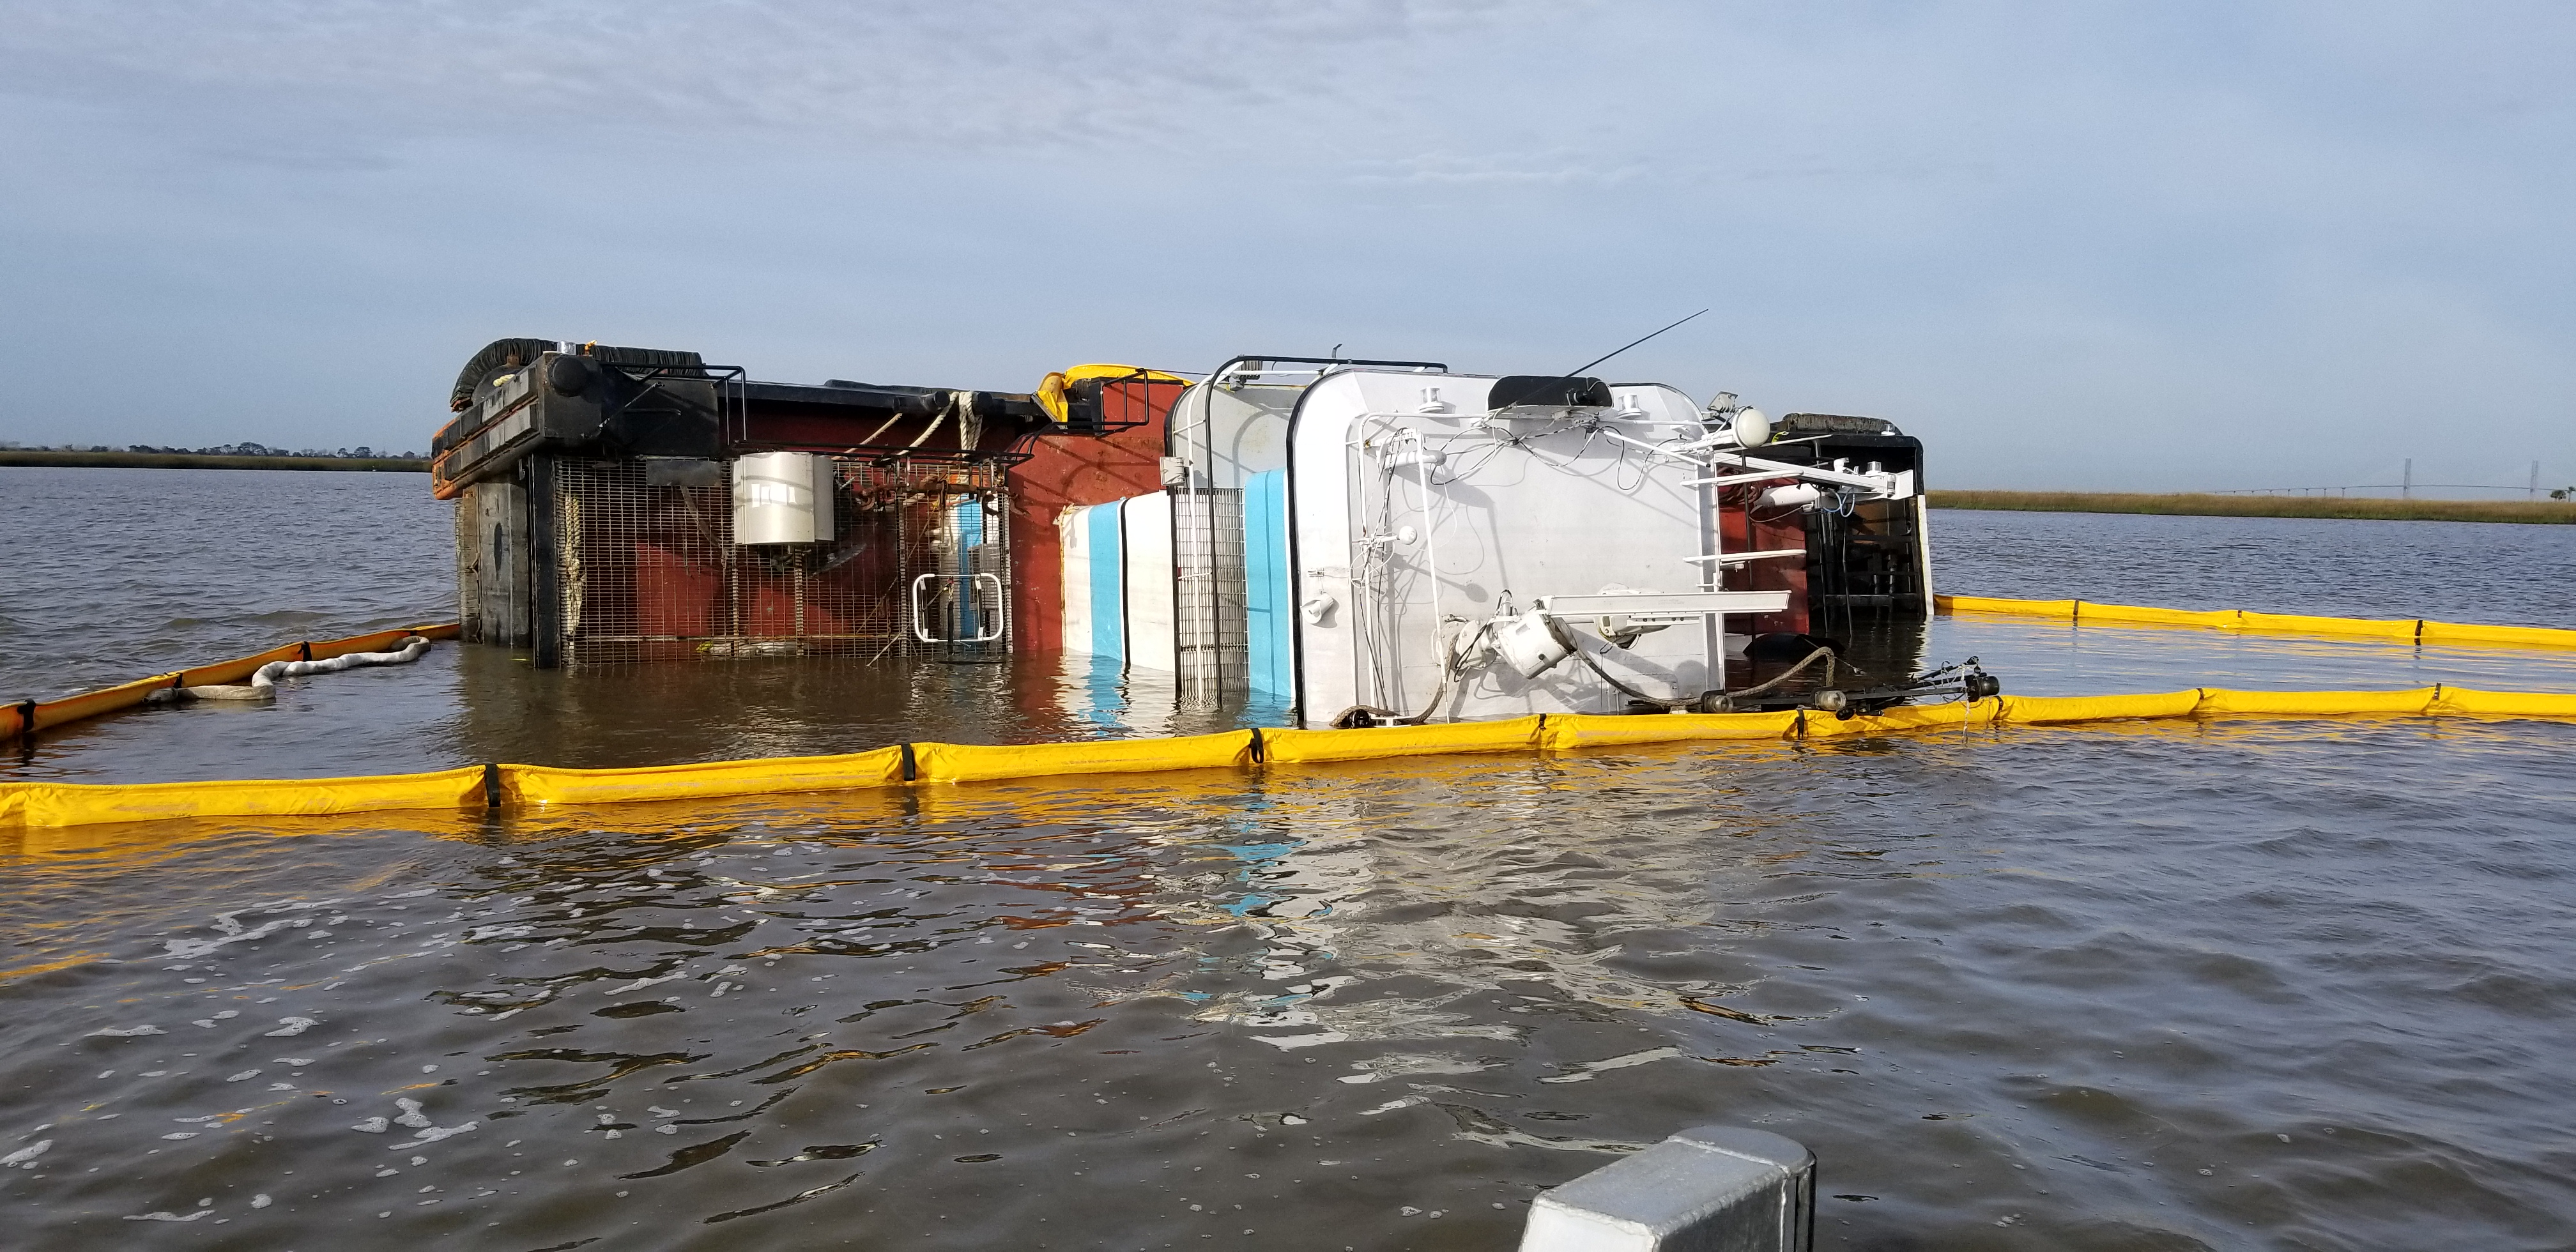 The Miss Addison, a 56-foot tug boat, is overturned on its port side in Jekyll Creek west of Jekyll Island, Ga., on Thursday, Jan. 3, 2019. Sam LaBarba/Georgia Department of Natural Resources.